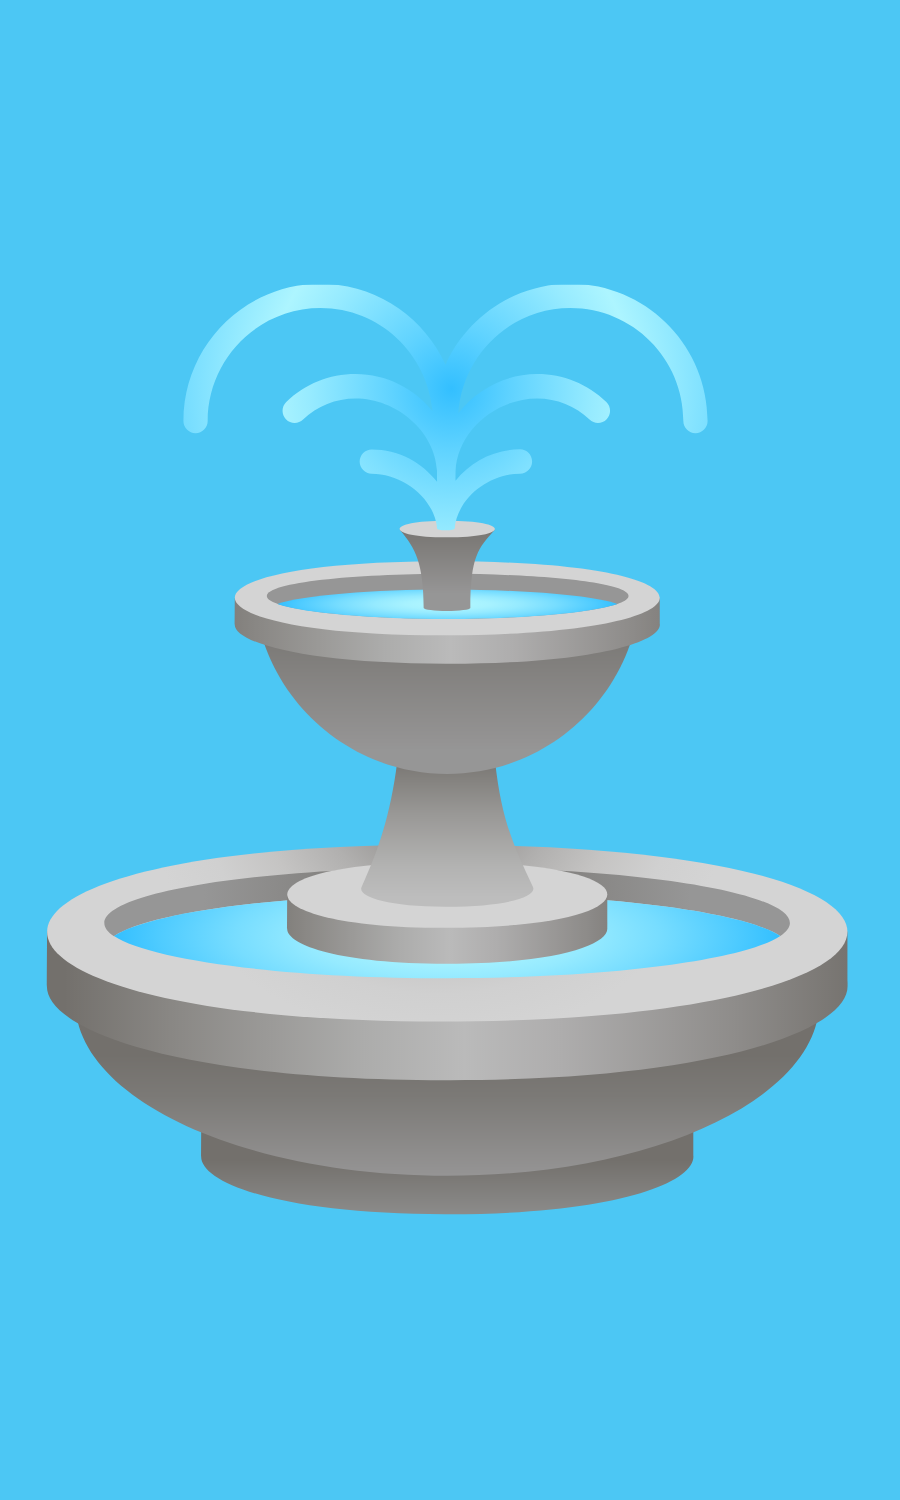 May contain: water, fountain, and drinking fountain